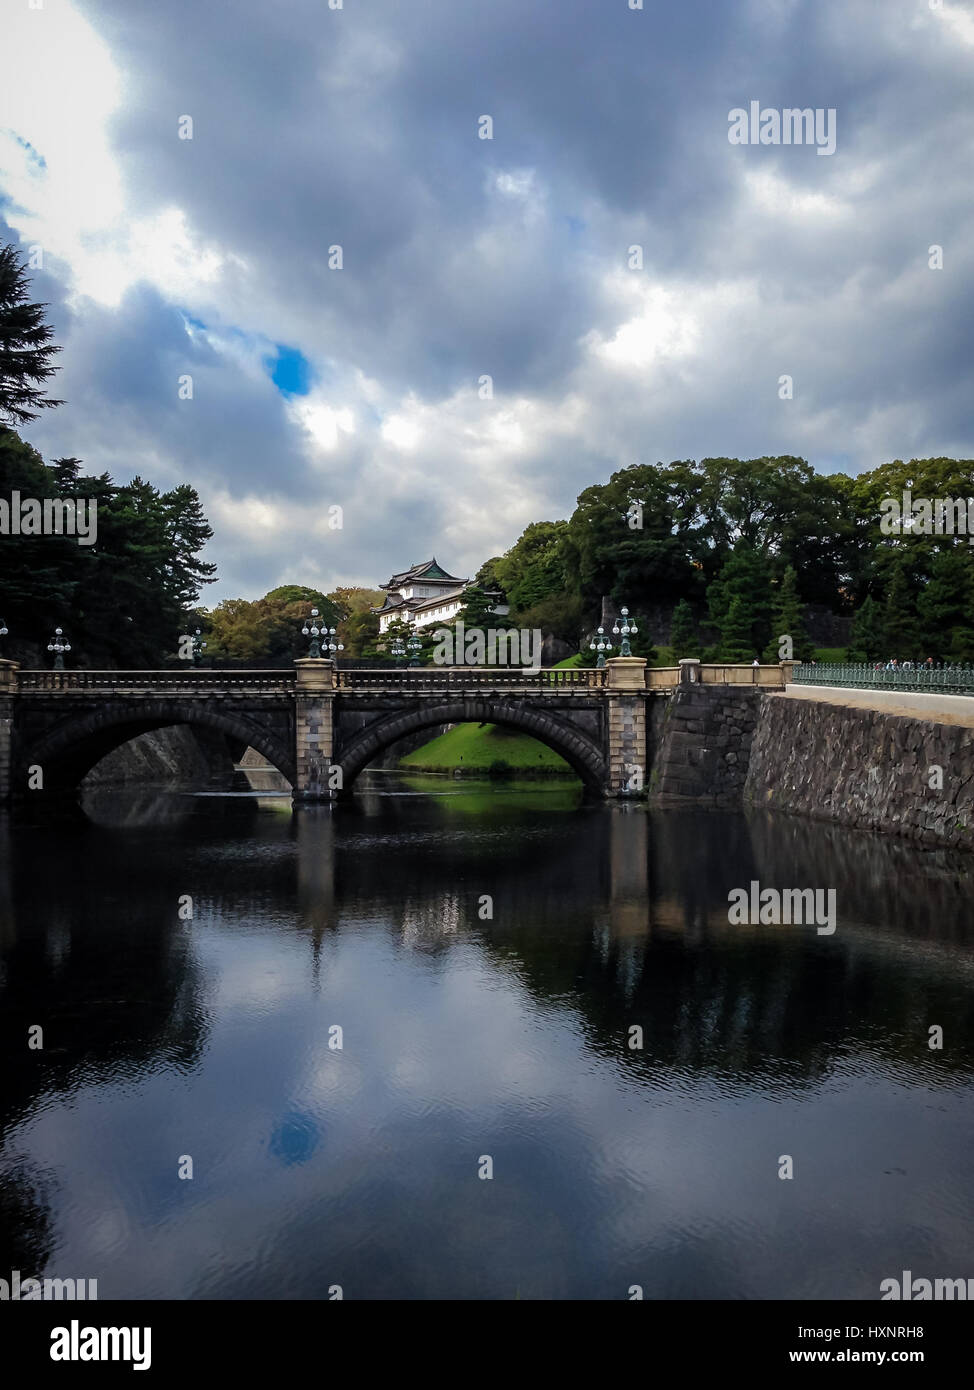 Nijubashi Bridge and Imperial Palace - Tokyo, Japan - Stock Image